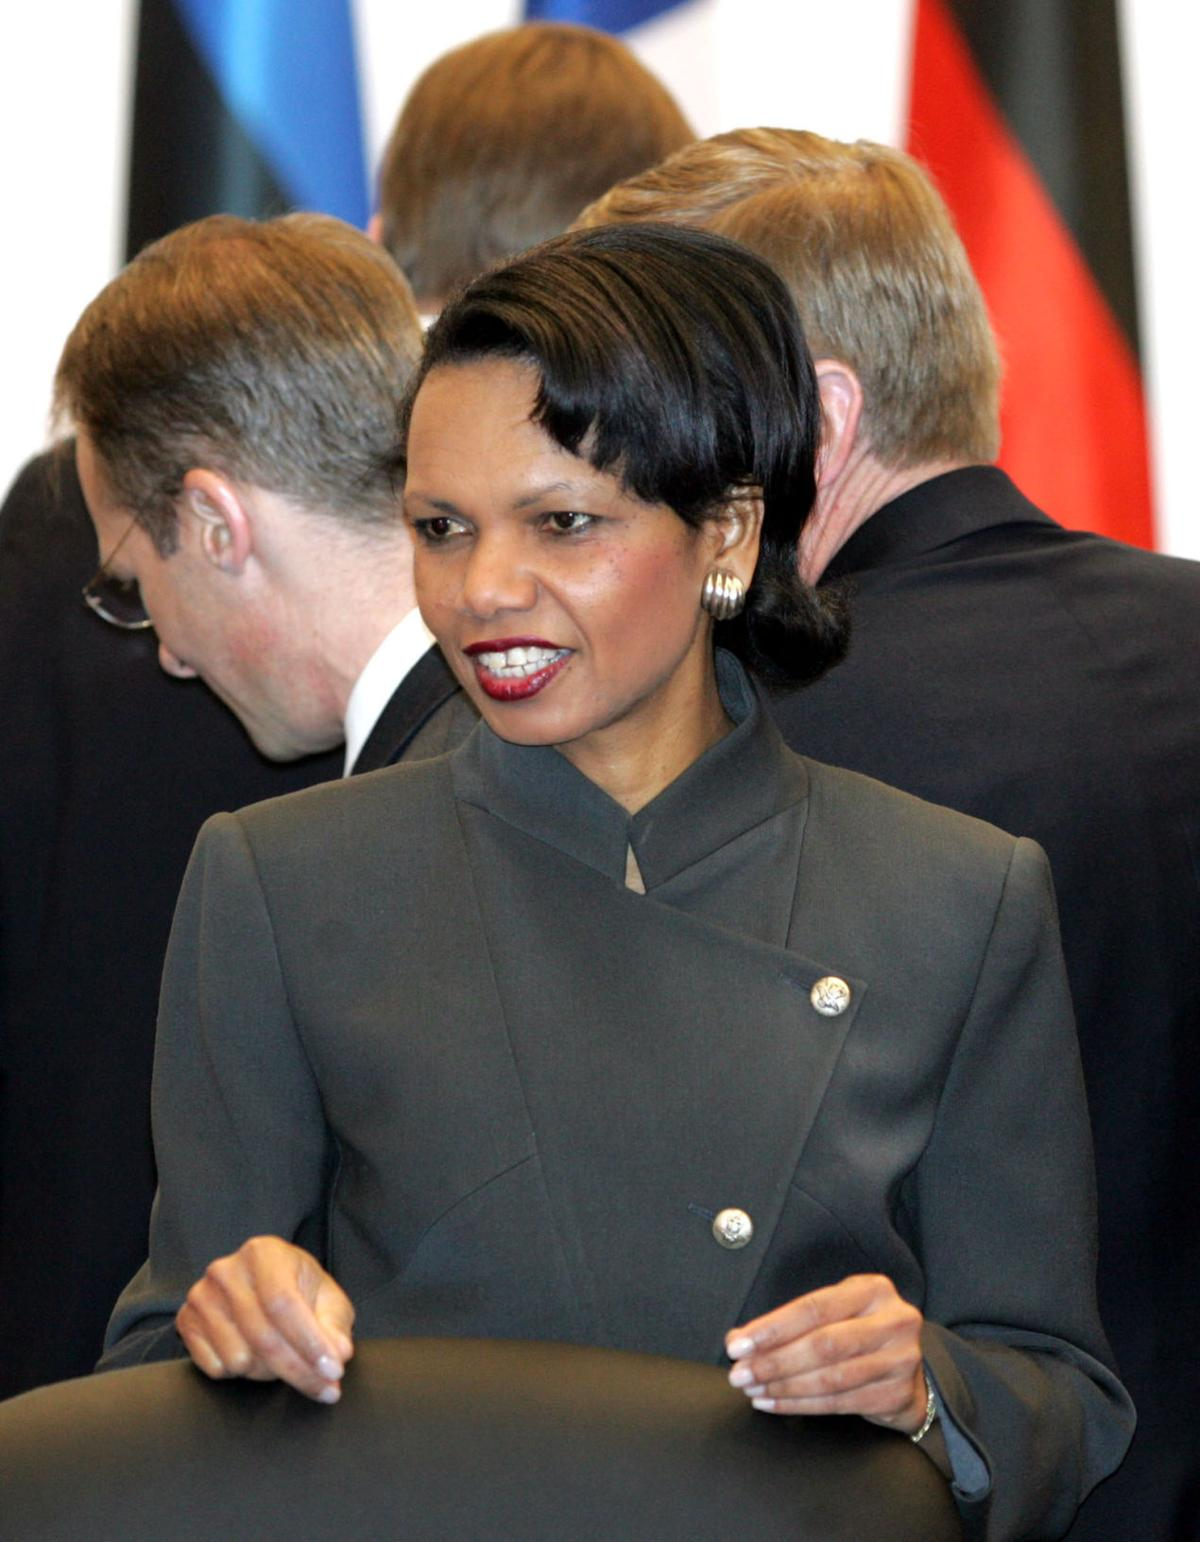 Condoleezza Rice coming to South Carolina to campaign for U.S. Sen. Lindsey Graham